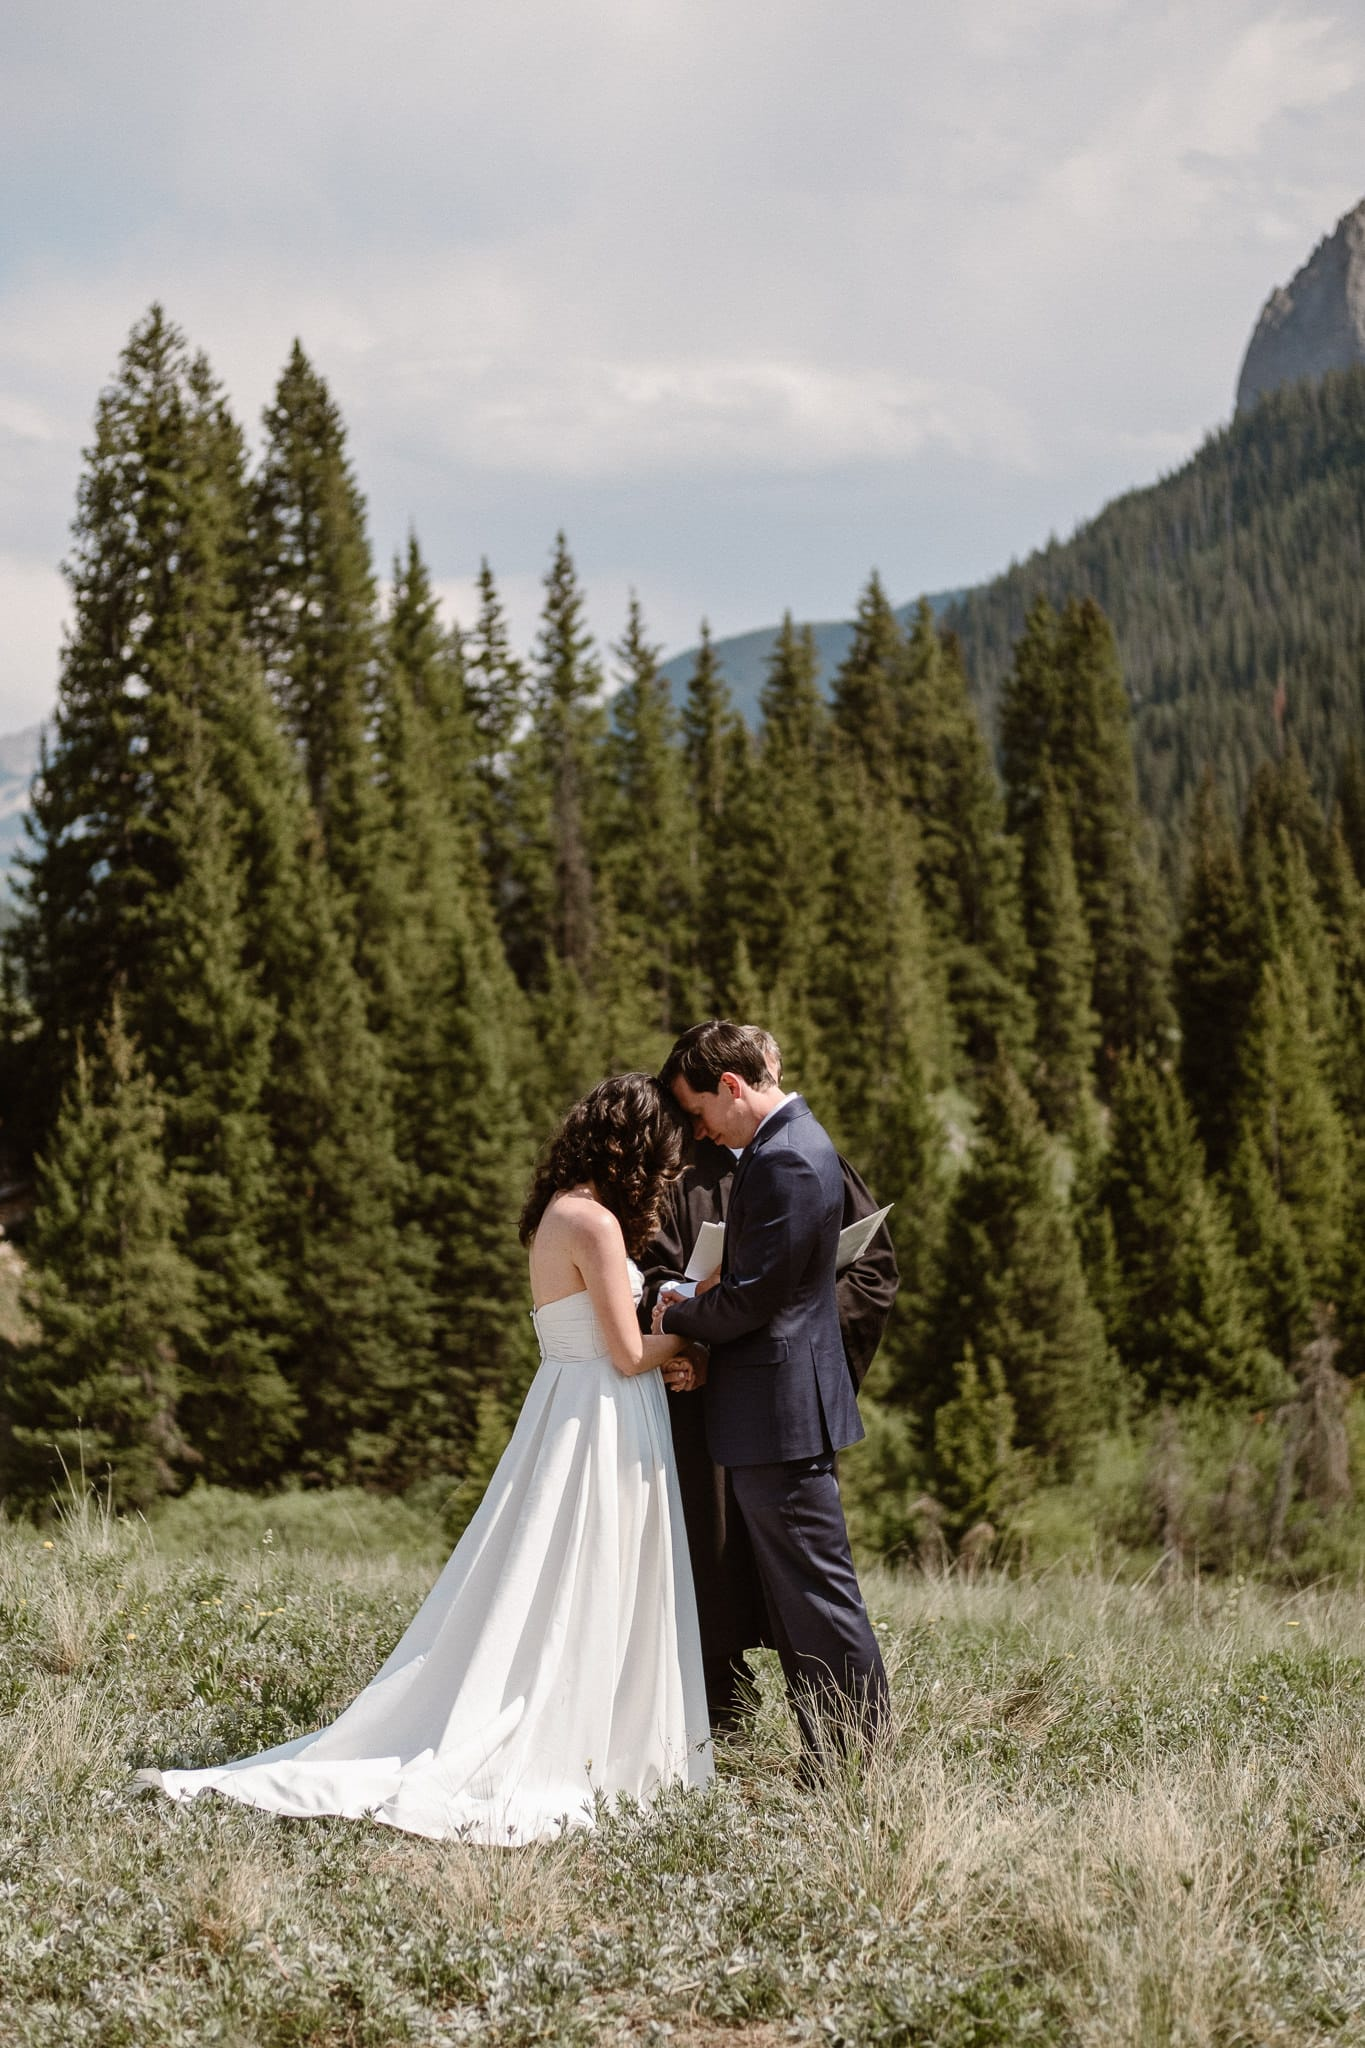 Crested Butte elopement photographer, Colorado adventure wedding photographer, mountain hiking elopement ceremony,